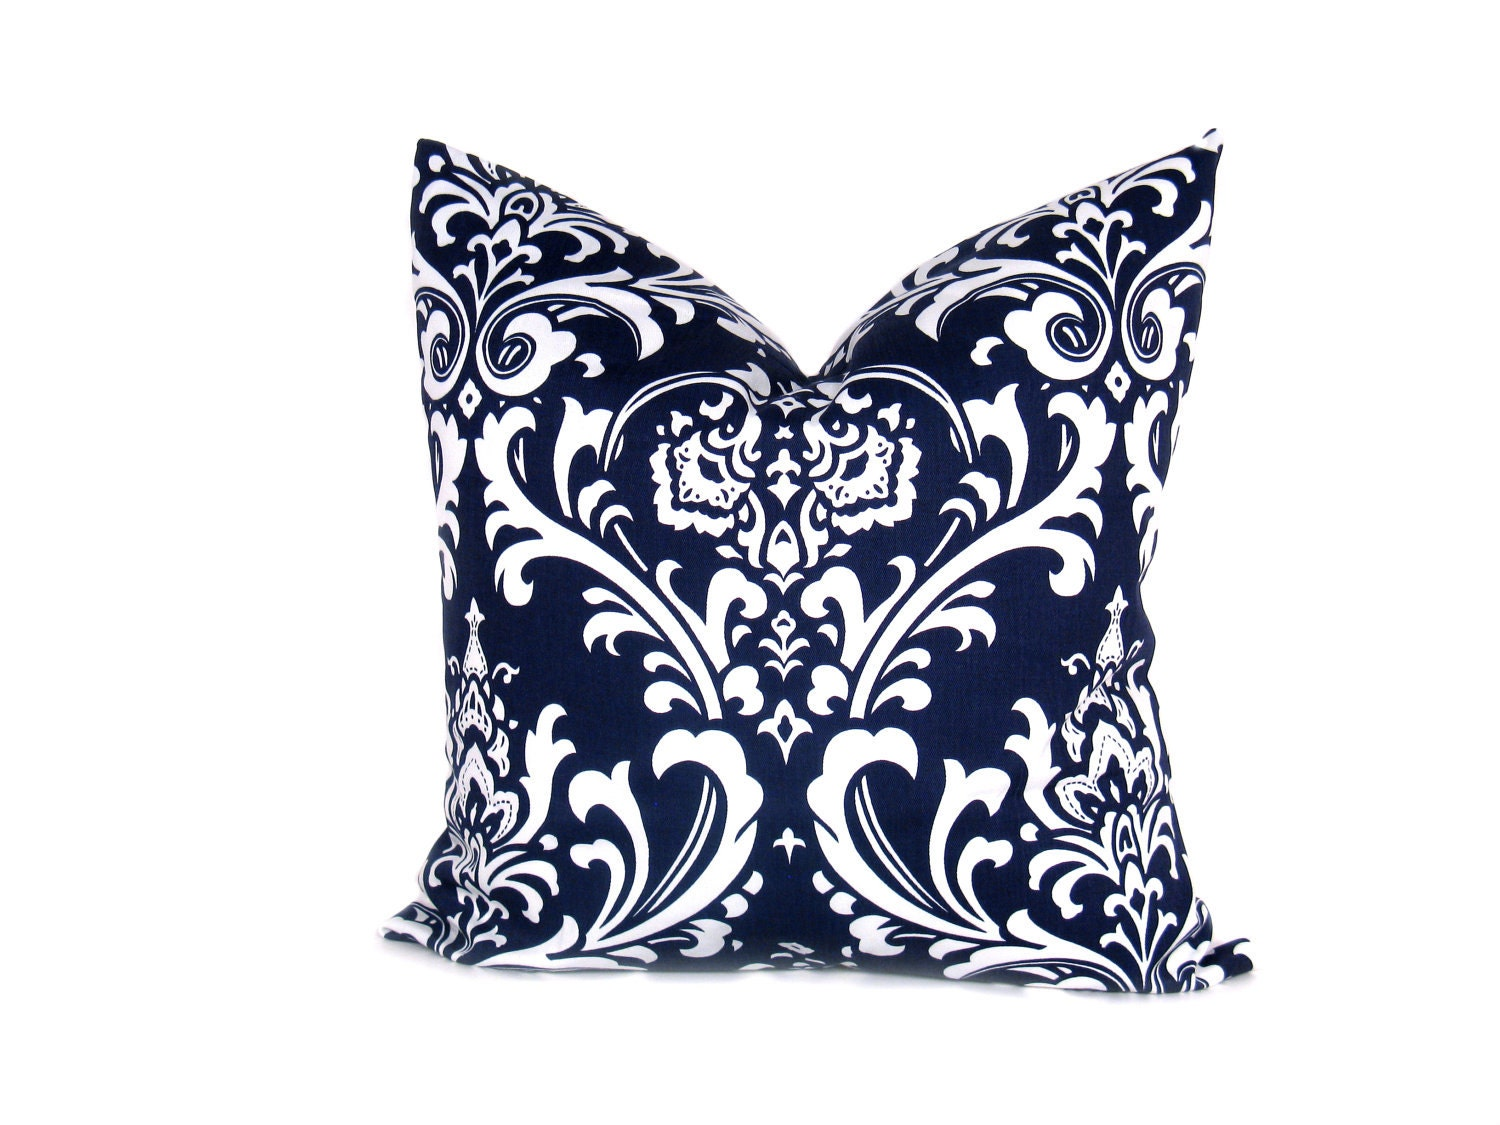 Decorative Pillows In Navy Blue : Decorative Euro Pillow Sham Navy Blue Pillow ONE by EastAndNest